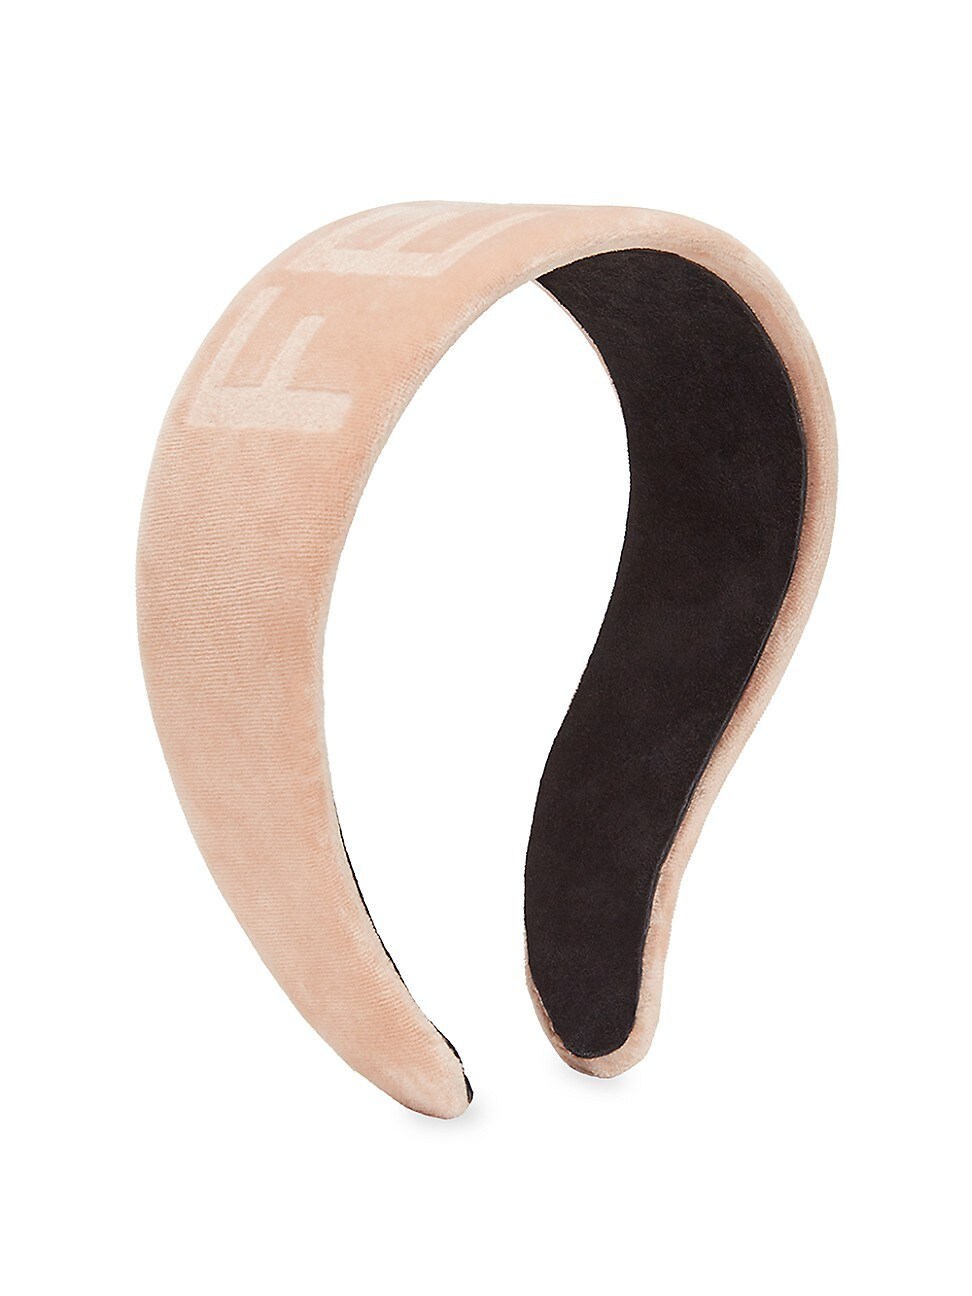 Fendi WOMEN'S VELVET LOGO HEADBAND